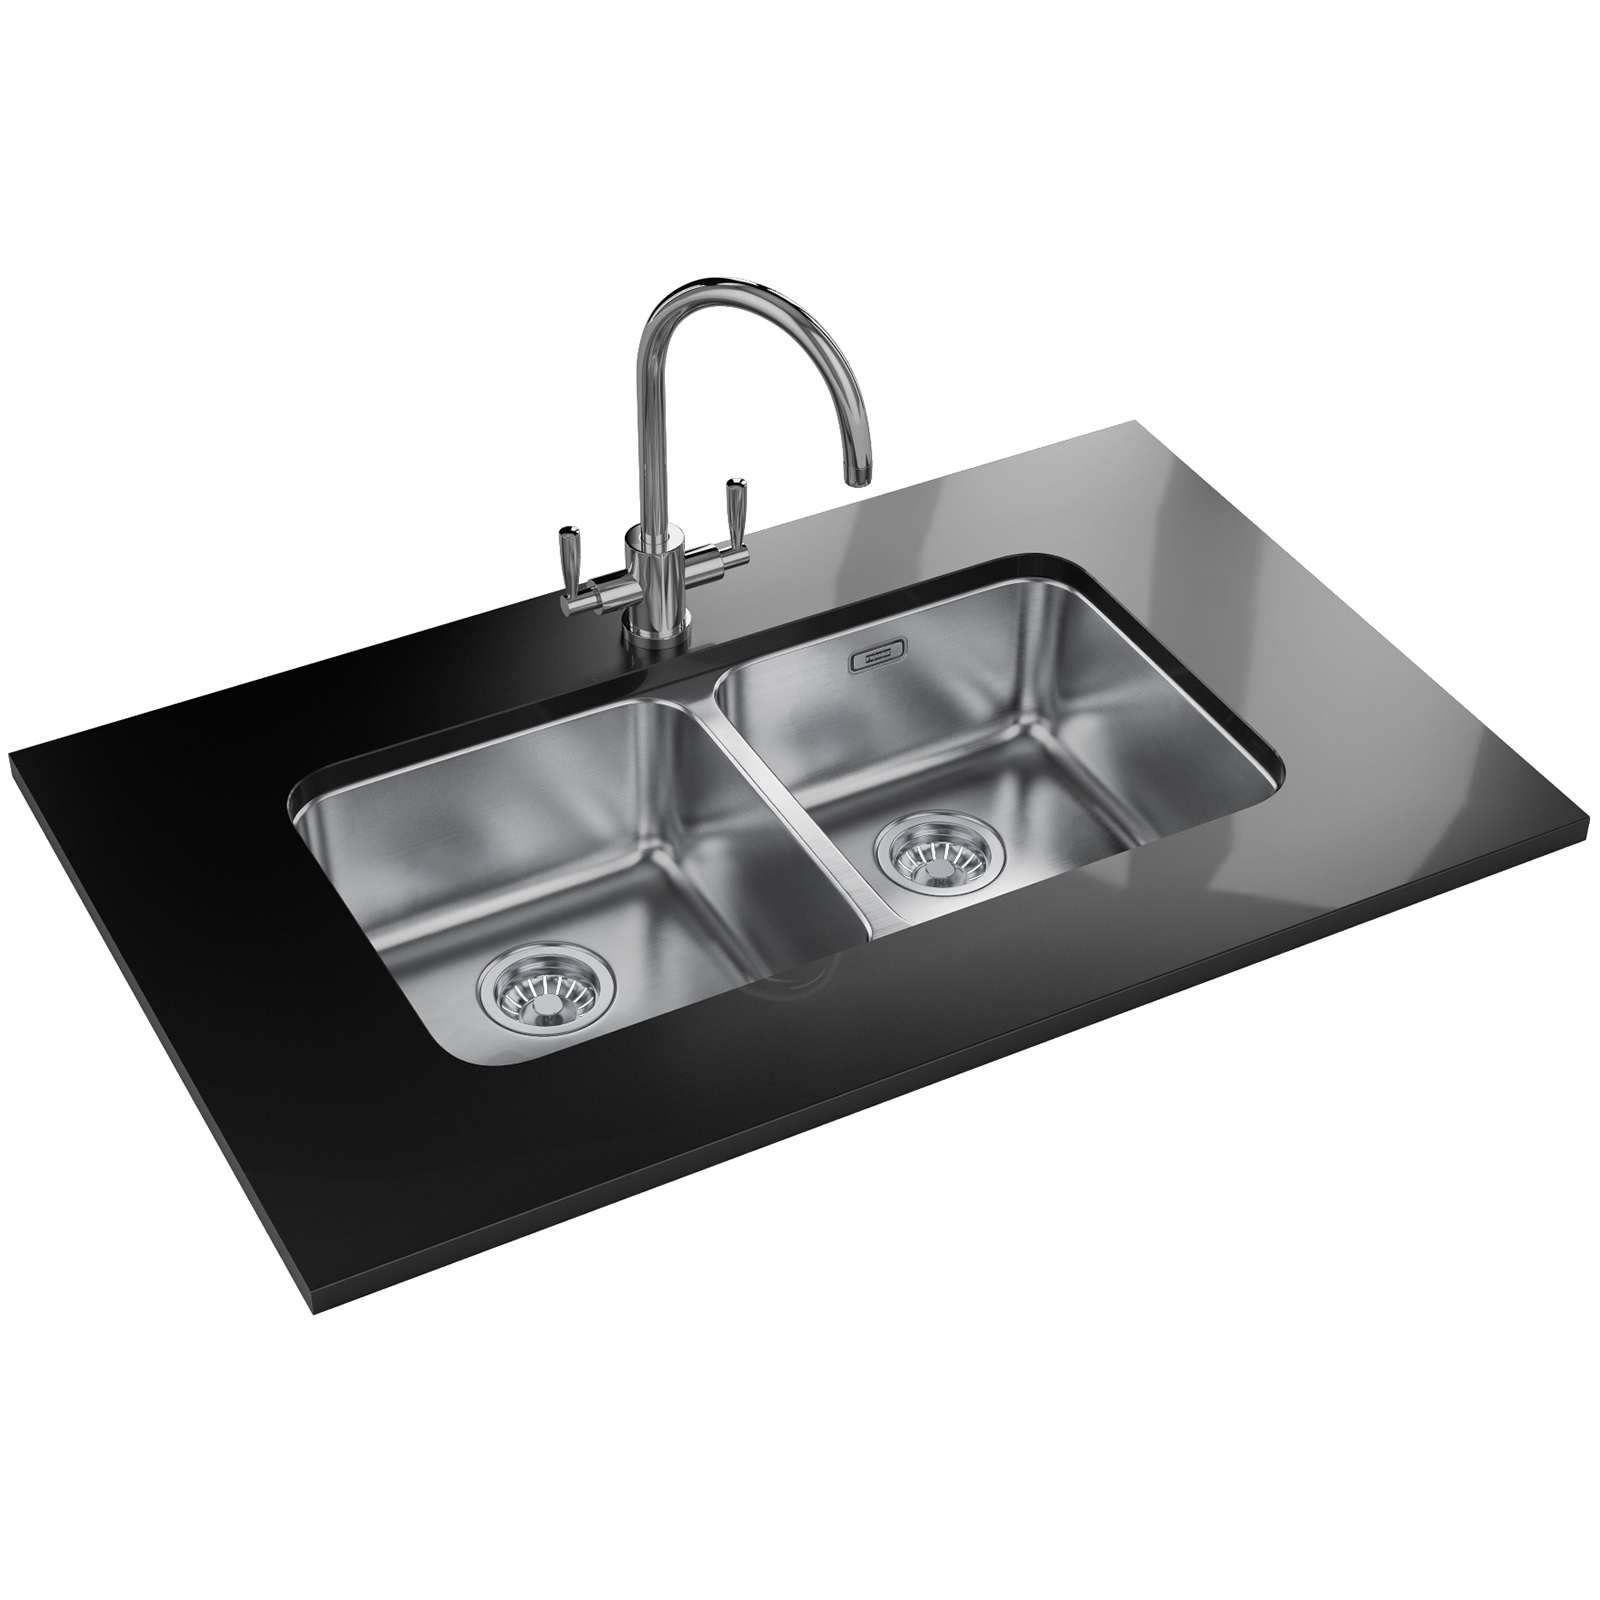 Franke Largo LAX 120 36-36 DP - Stainless Steel Sink And Tap